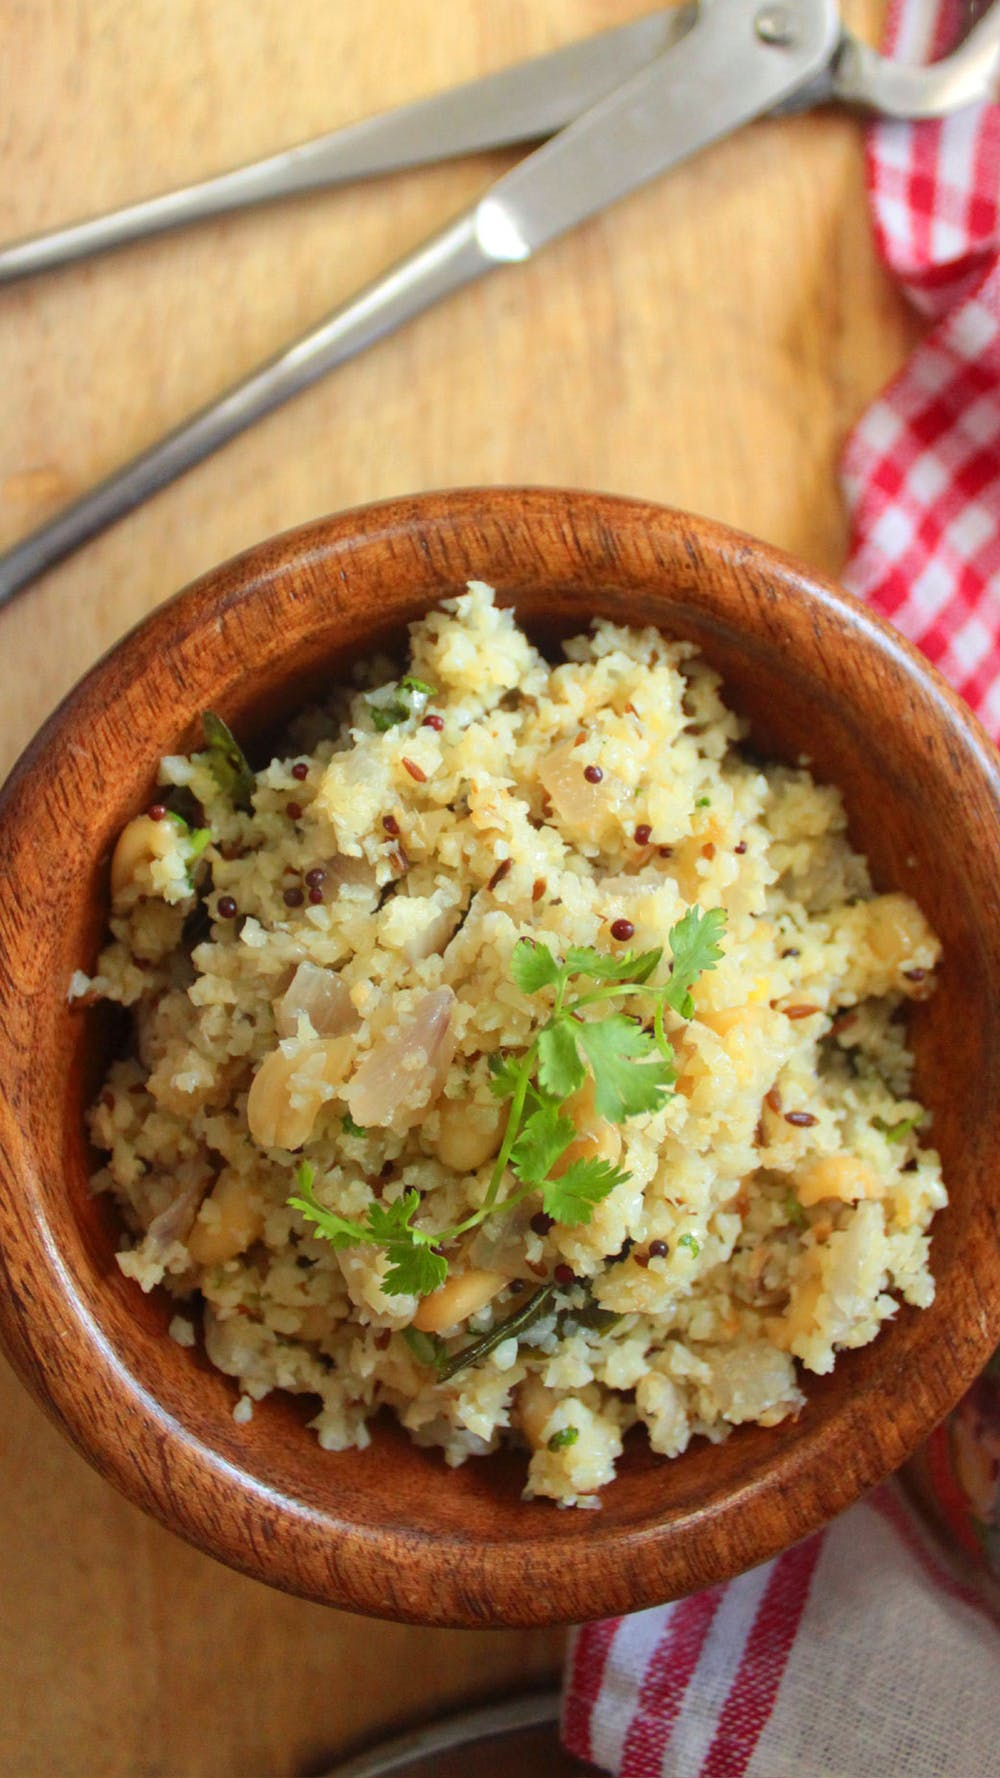 Low-carb upma (Indian breakfast dish)